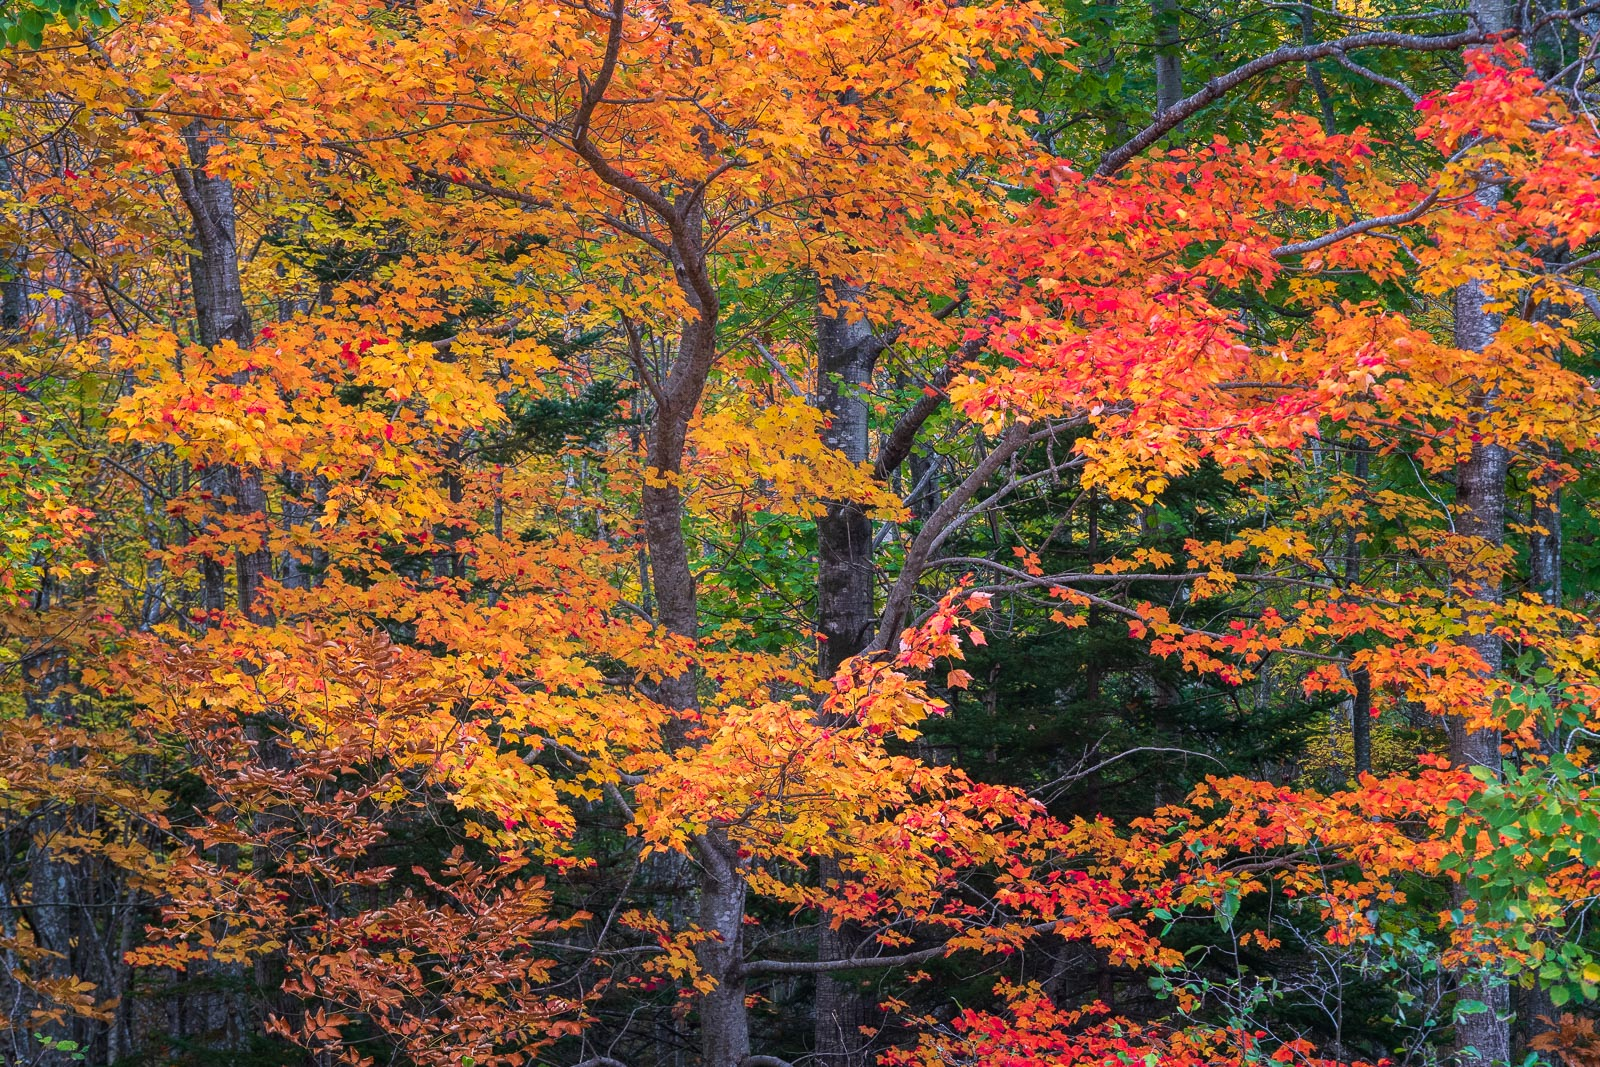 Autumn maples dot the forests of Acadia National Park and turn a stunning display of coor in October. I found this Maple one...